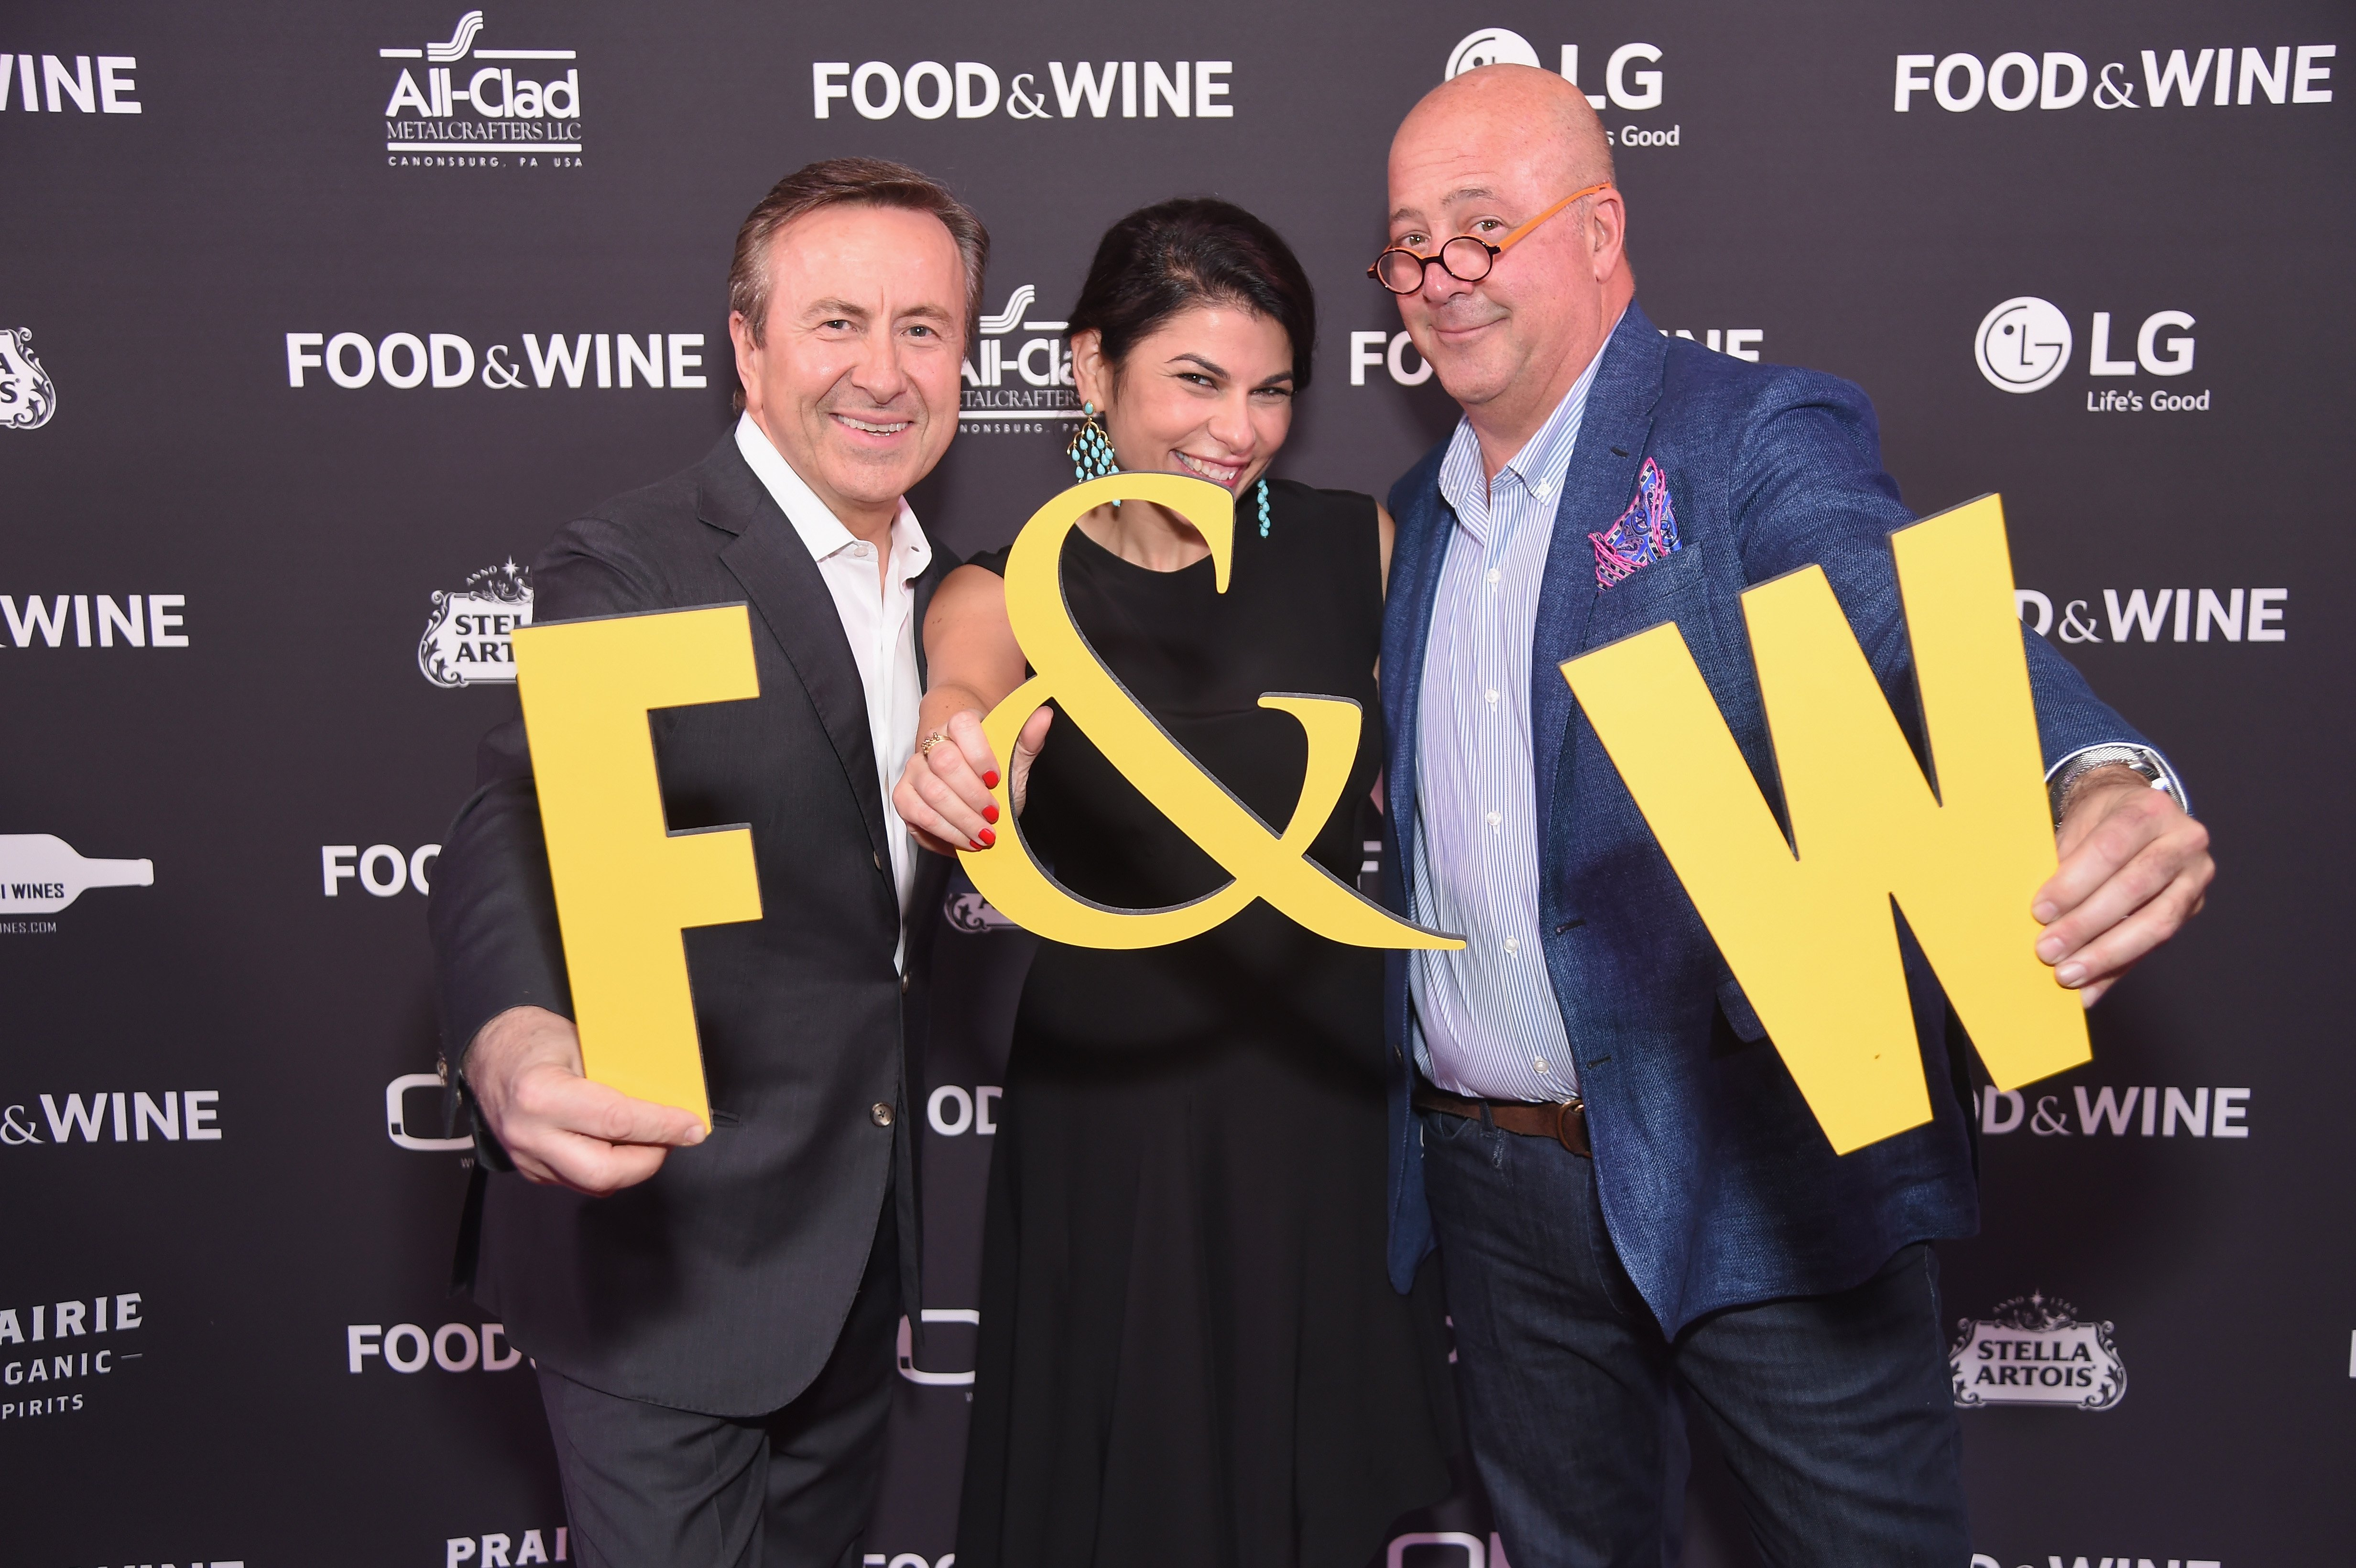 Chef Daniel Boulud, Nilou Motamed, Editor of Time Inc.'s Food & Wine, and Andrew Zimmern attend the Food & Wine Celebration of the 2017 | Source: Getty Images